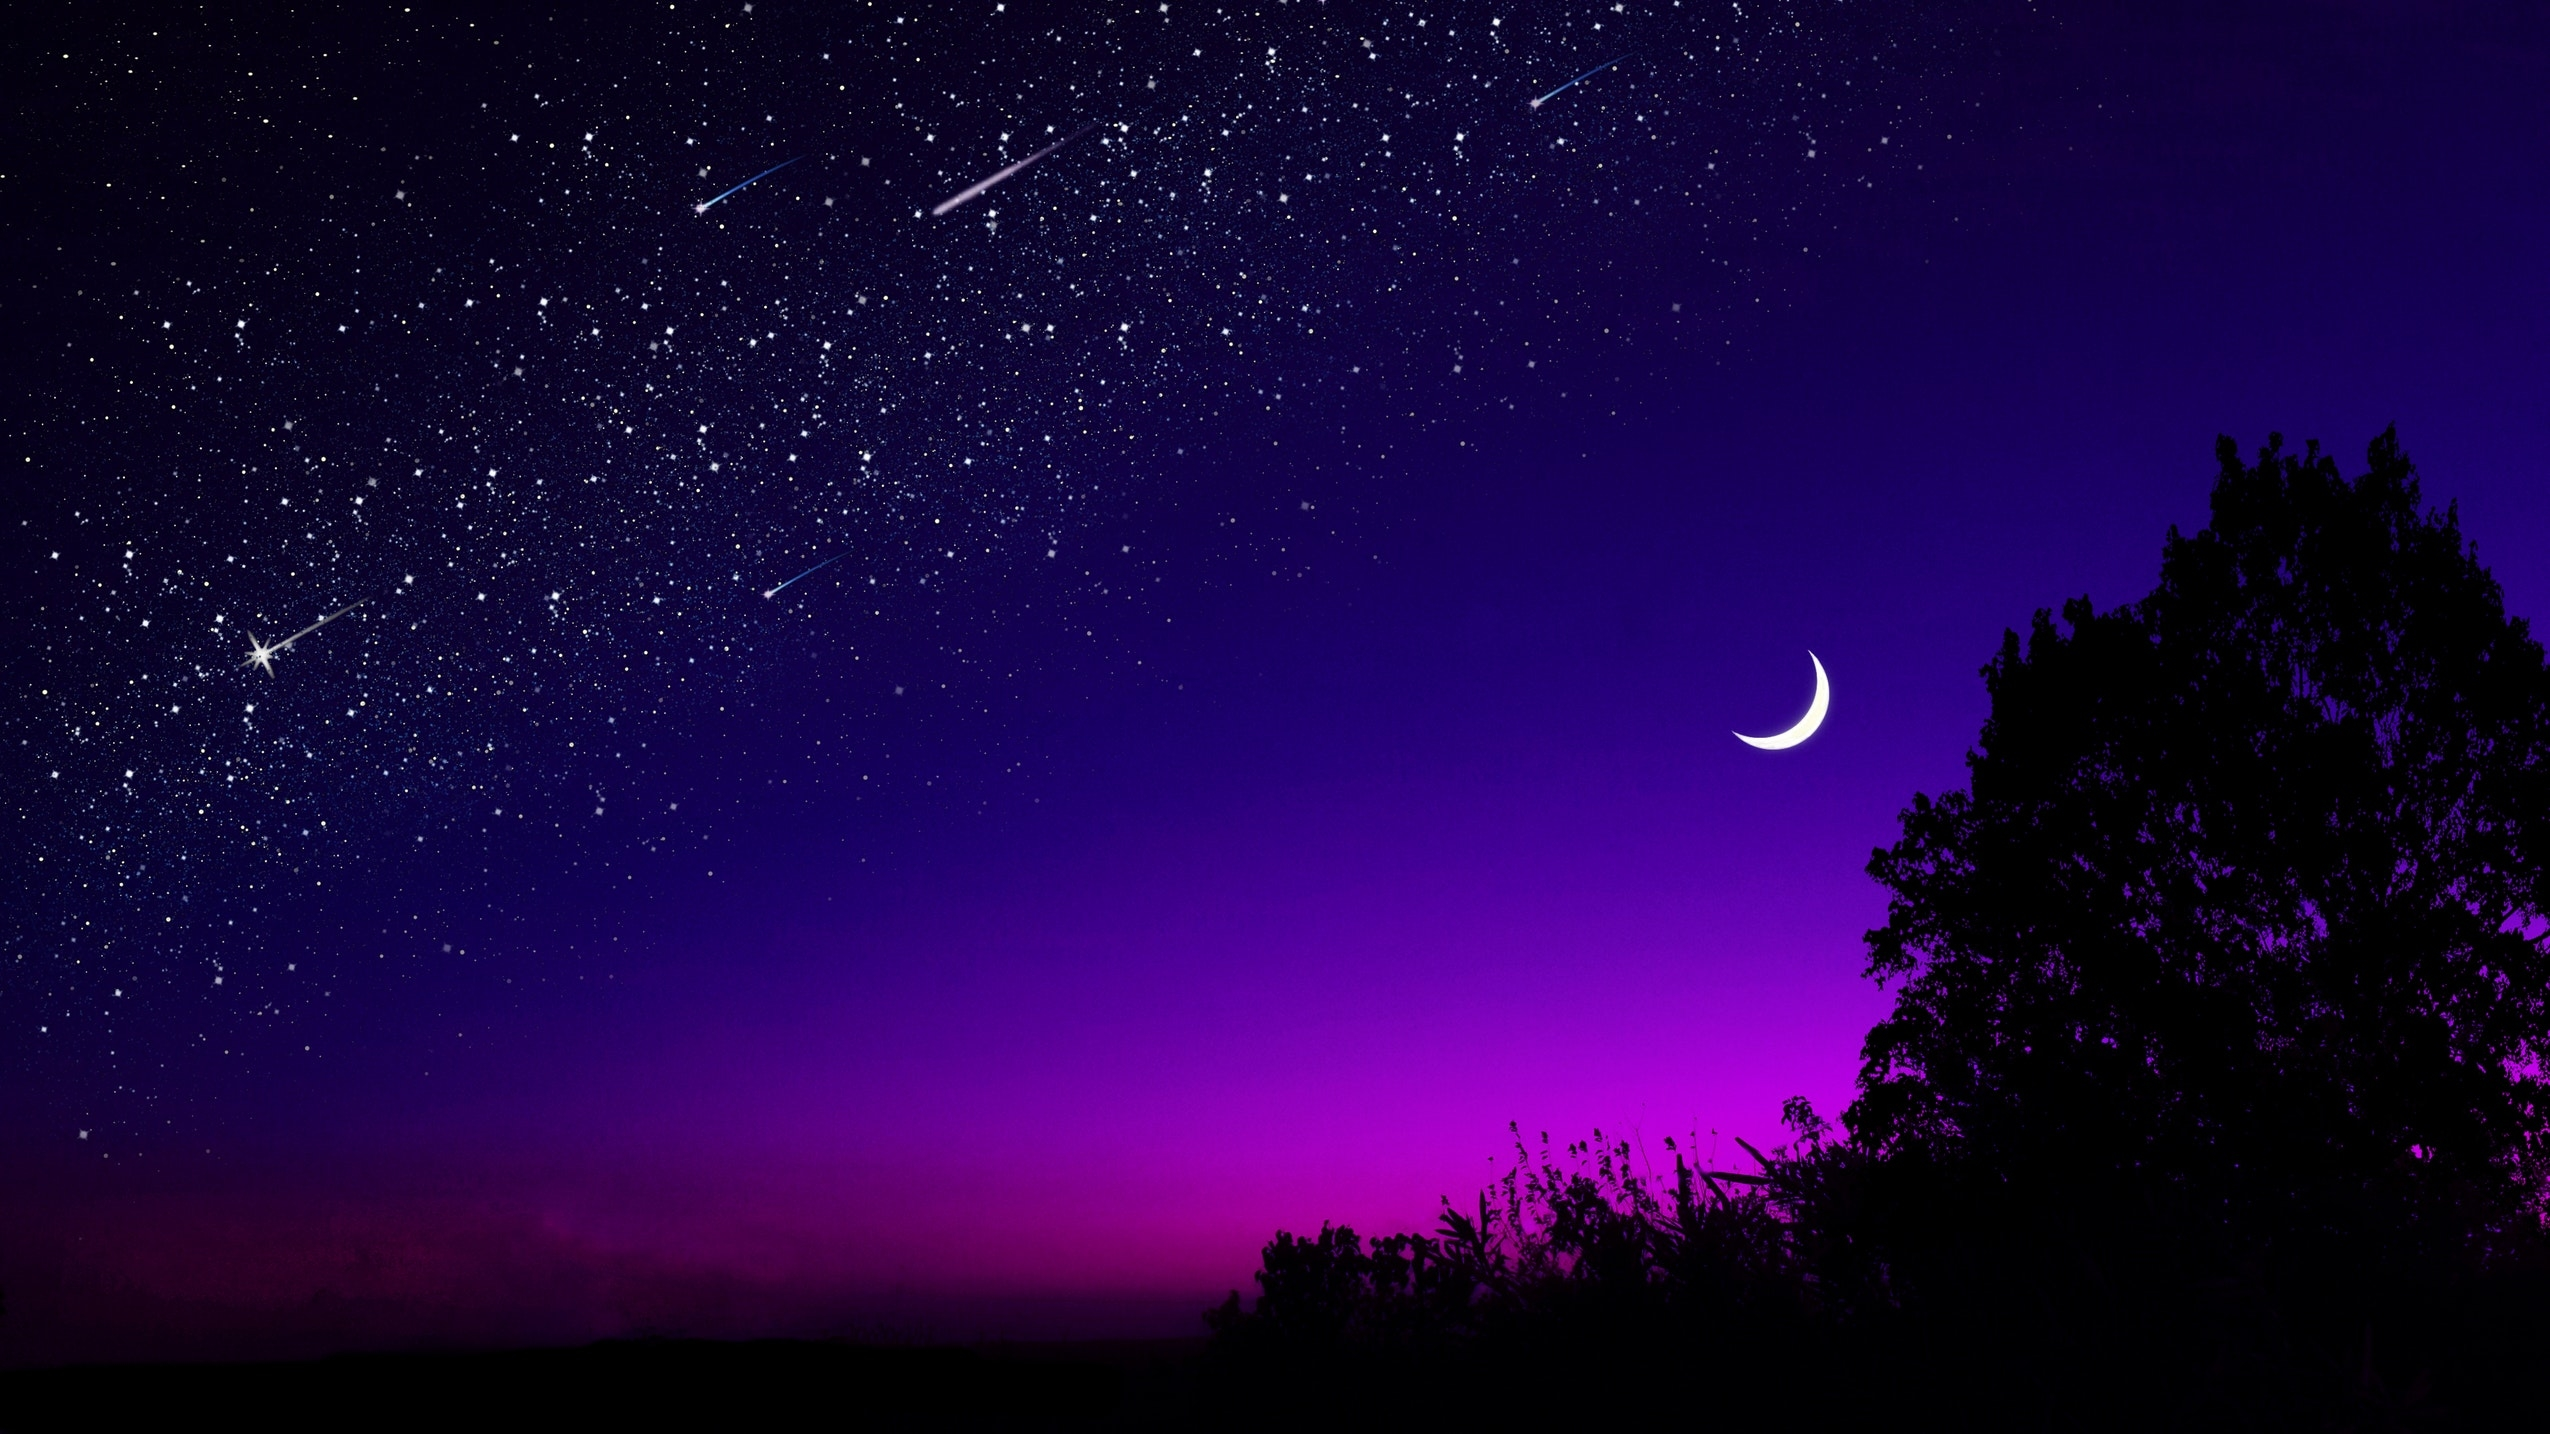 Half Moon Starry Night Wallpaper Hd Nature 4k Wallpapers Images Photos And Background